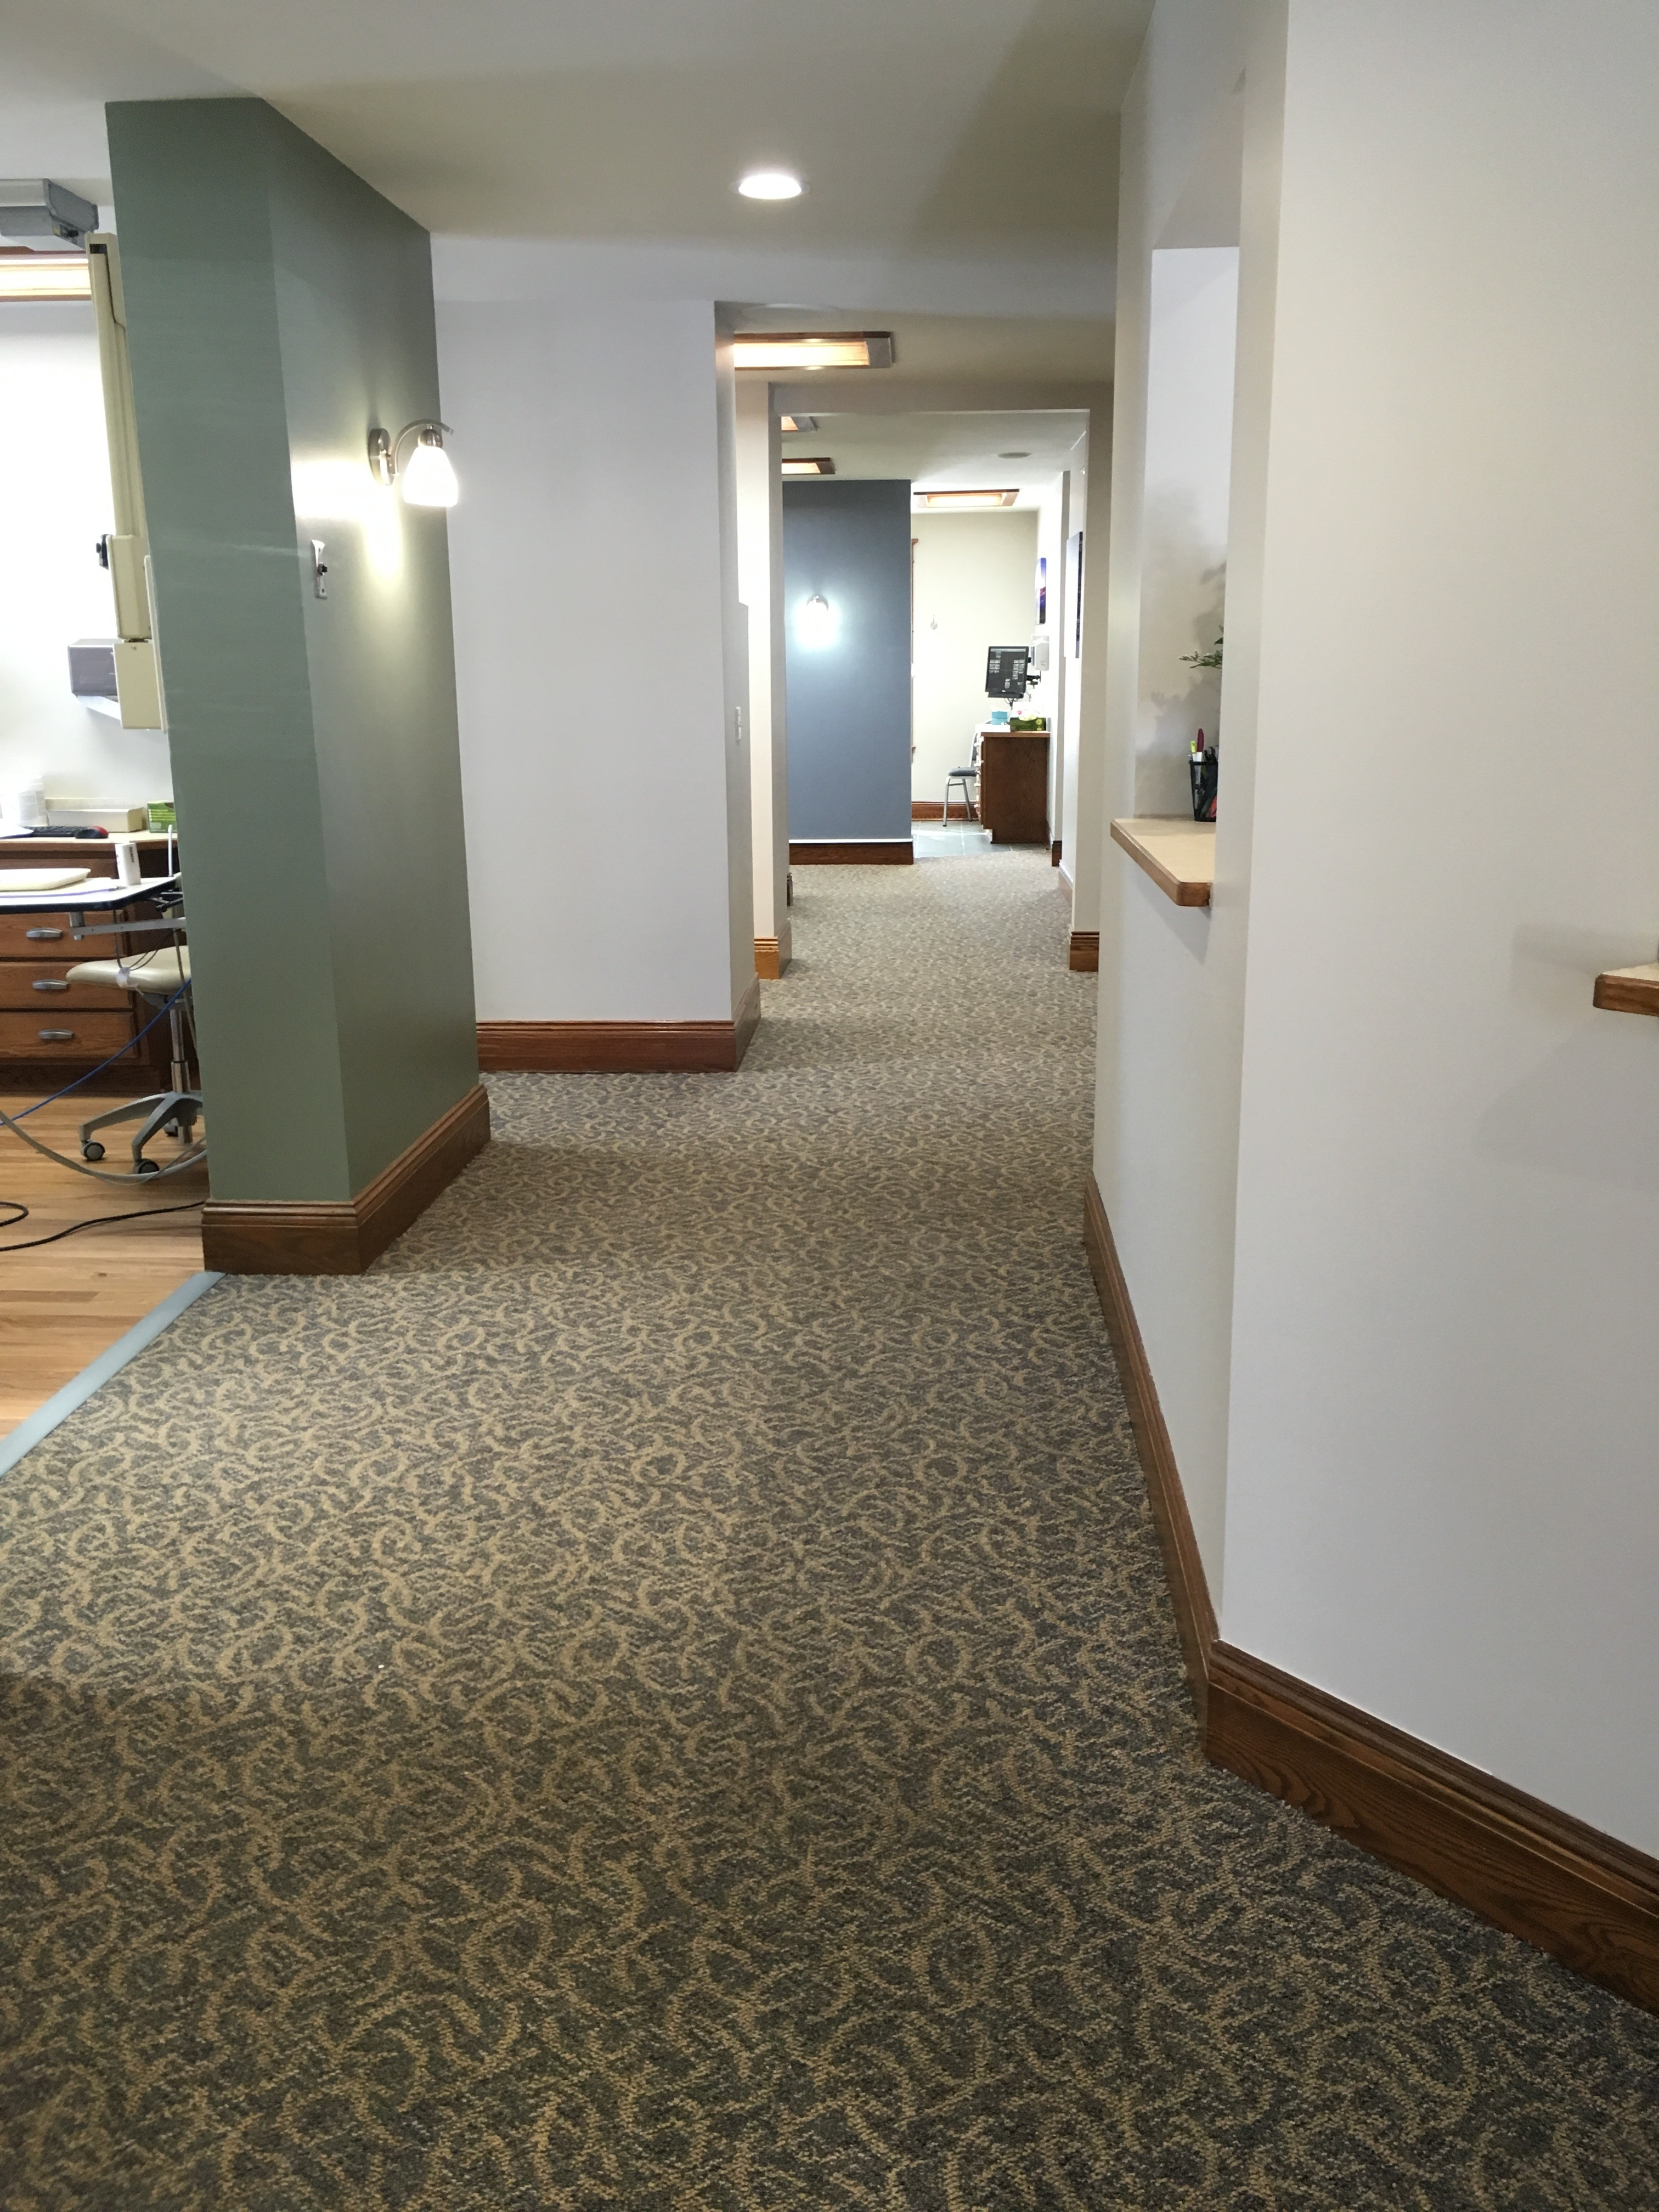 Hallways were expanded for ease of flow. Barbers Floors and More provided new flooring for our operatory rooms as well as carpeted areas.